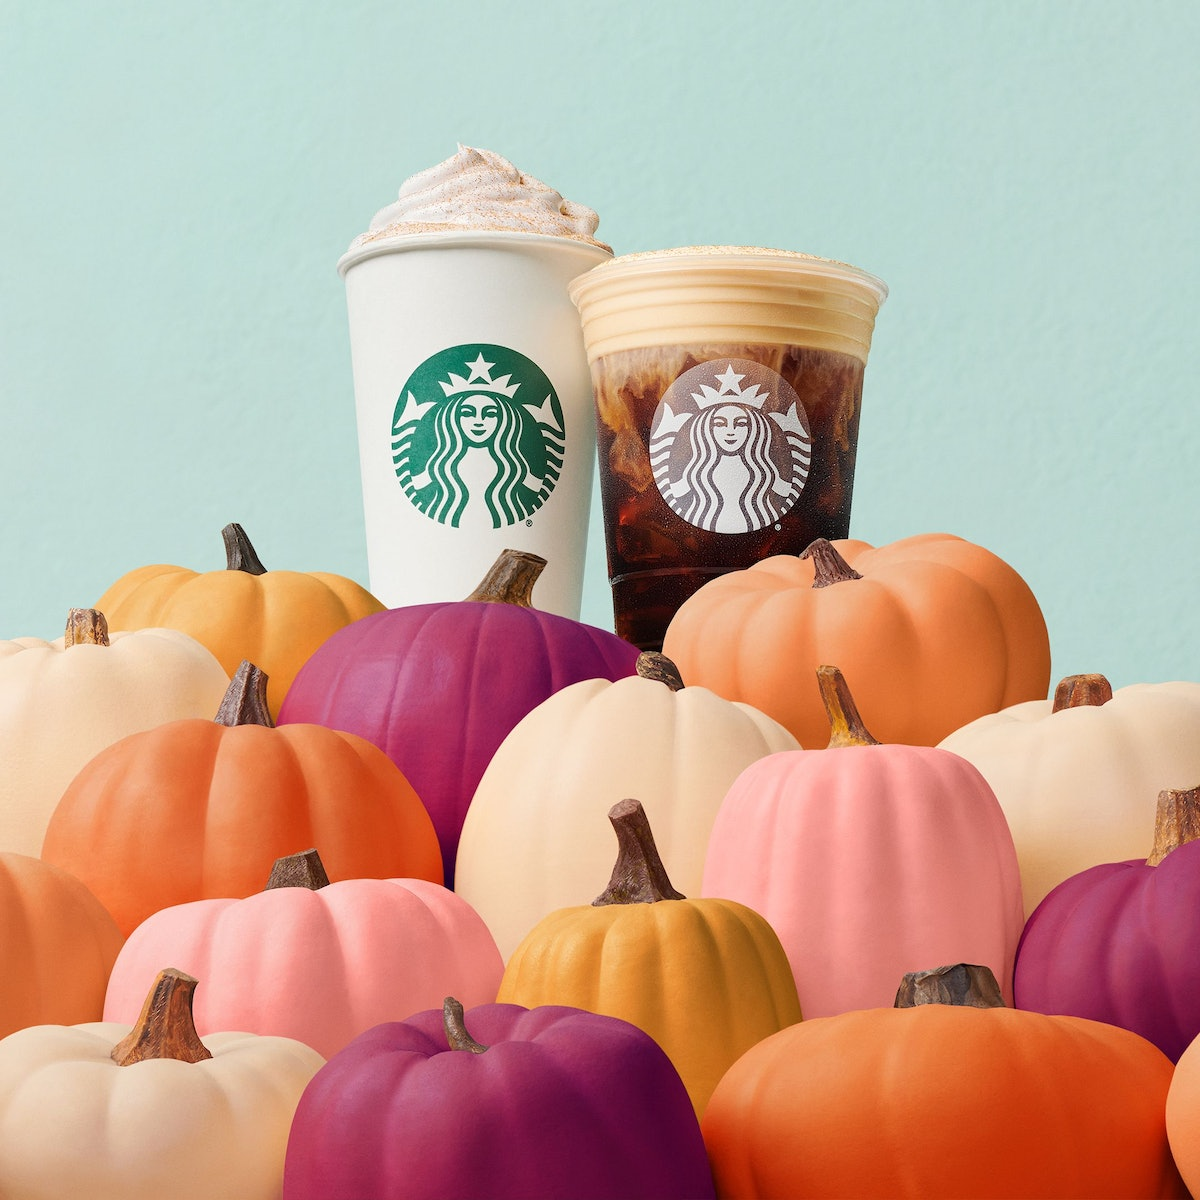 Twitter is freaking out about the return of Starbucks' Pumpkin Cream Cold Brew, which it first intro...